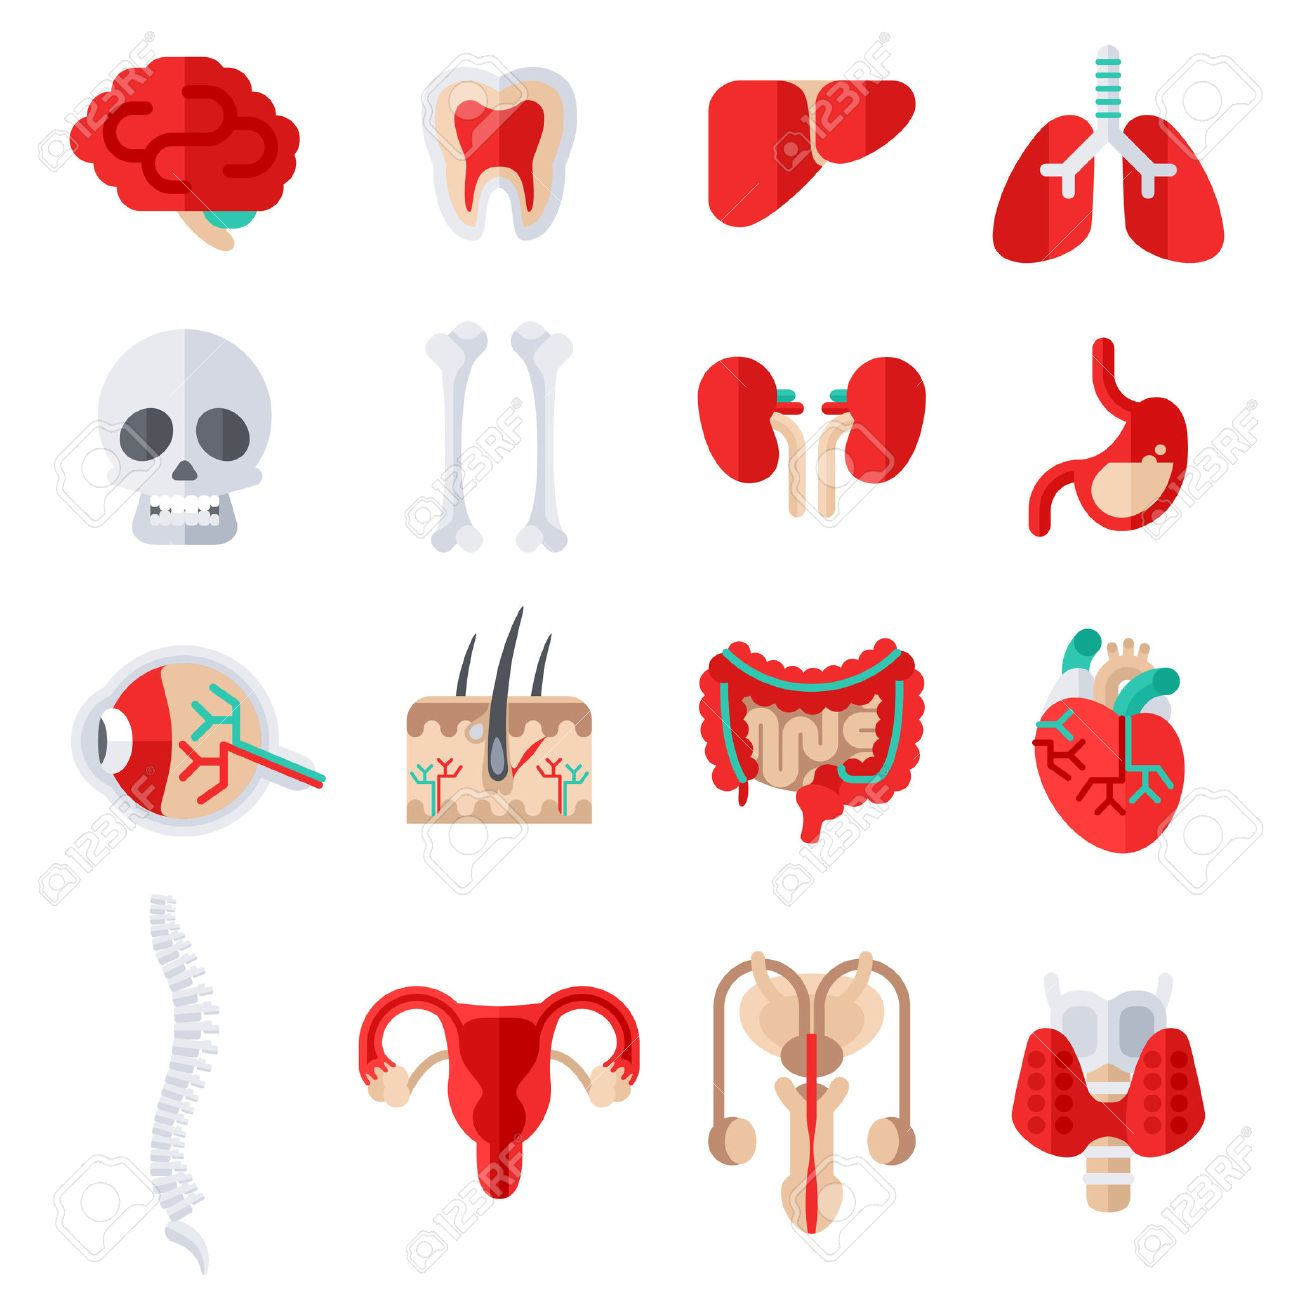 Human Internal Organs Flat Icons Set. Vector illustration. Skull and bones, liver and kidney, stomach, eye anatomy, skin with hair, heart, man and woman reproductive system, spine, healthy tooth. - 55095330